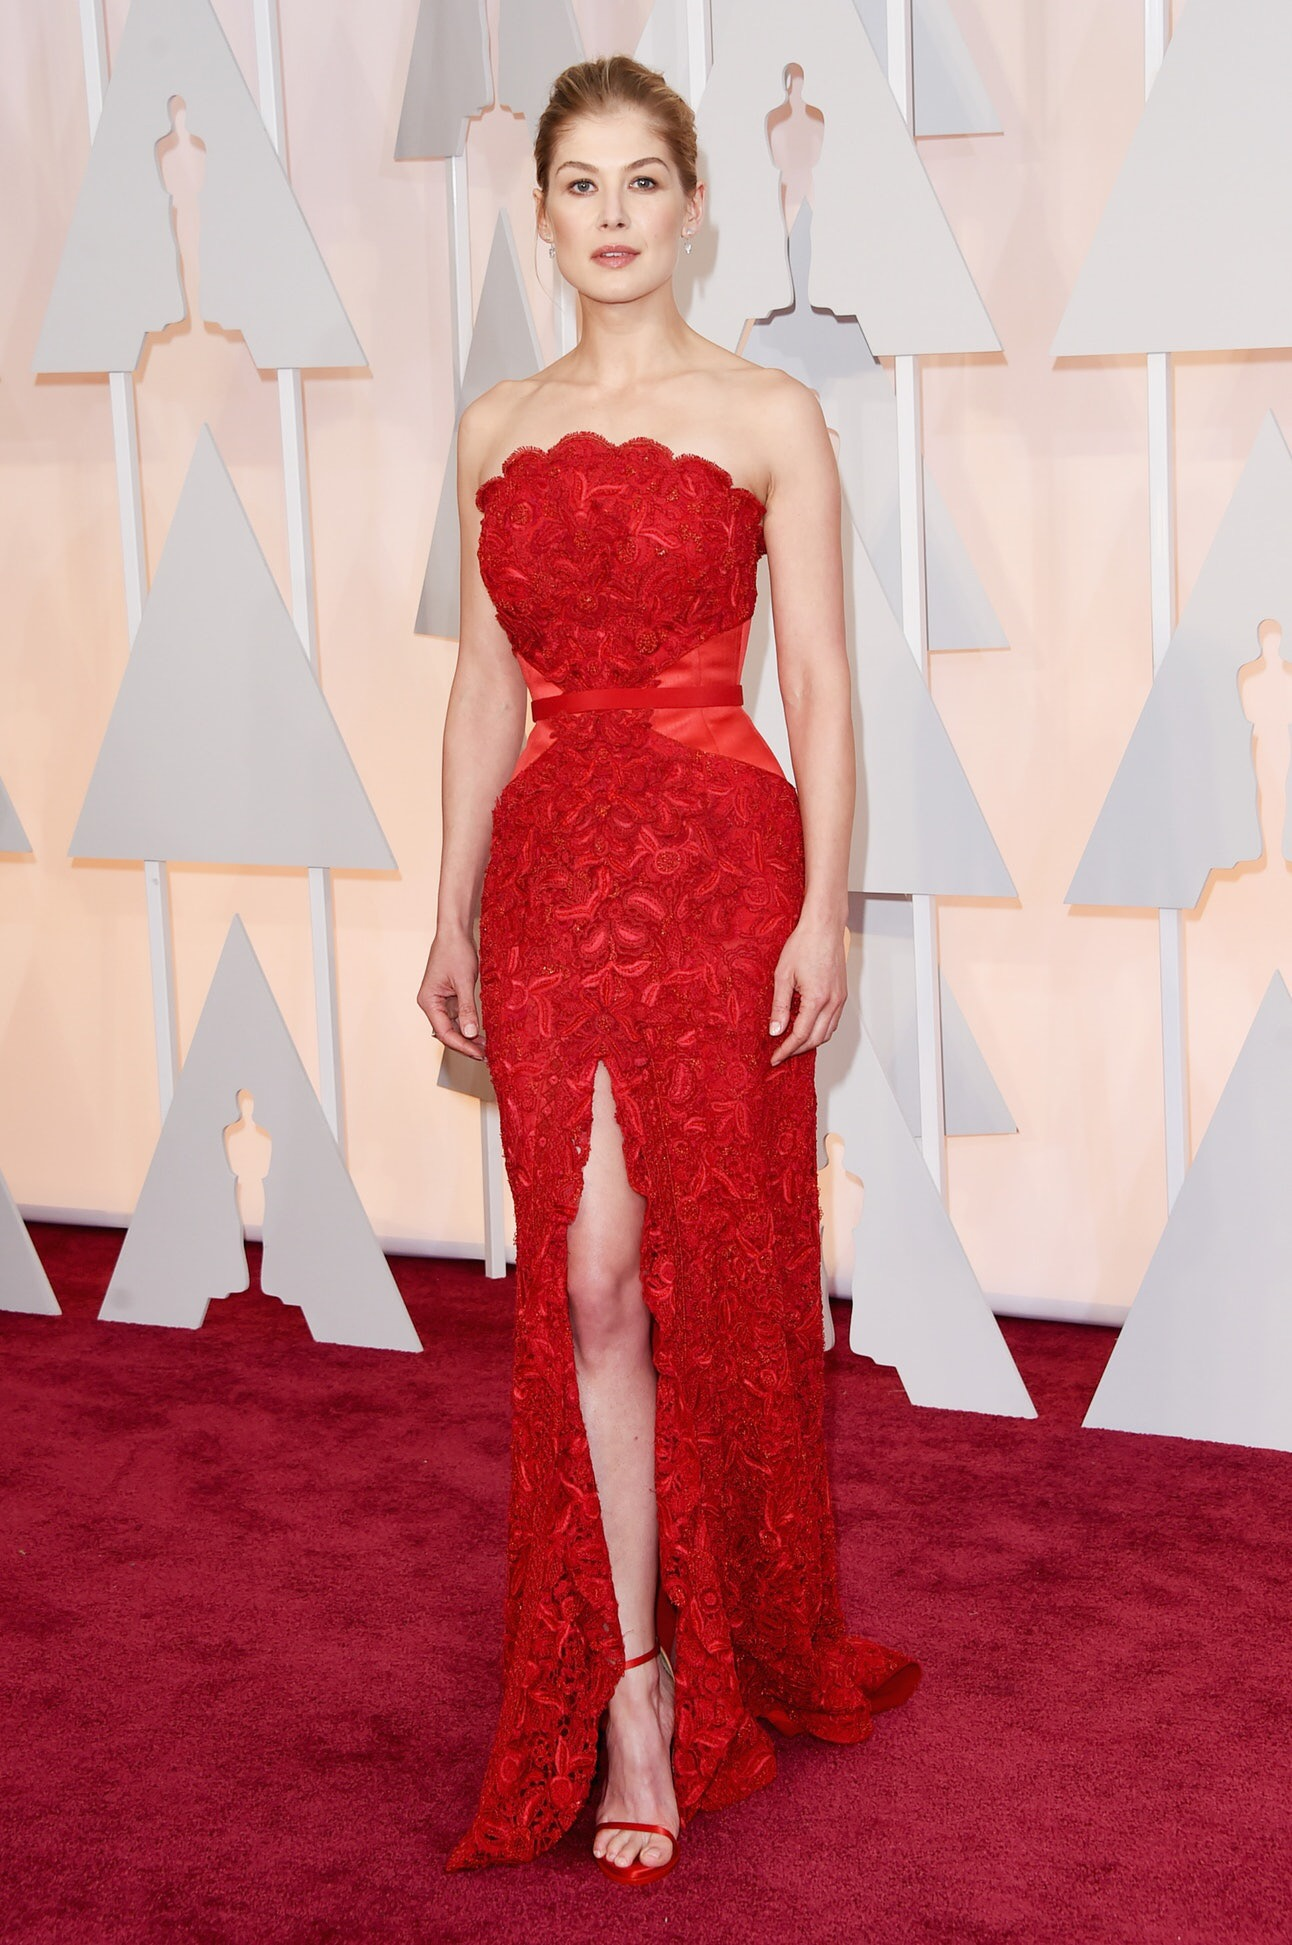 ROSAMUND PIKE, OSCARS 2015 in GIVENCHY